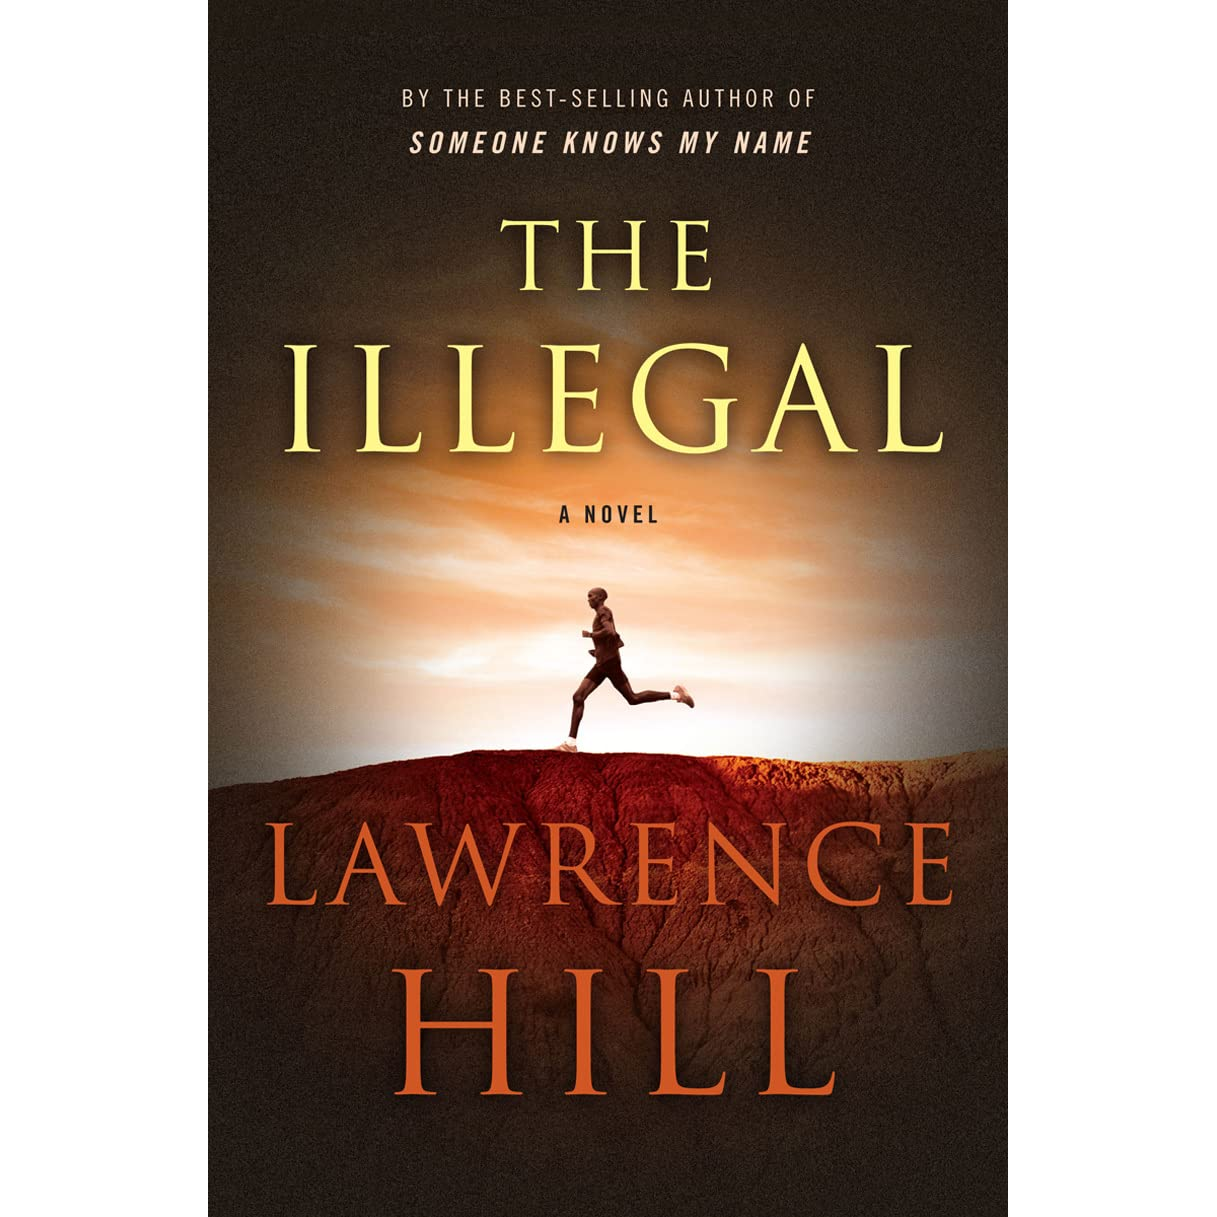 example lawrence biography hill author